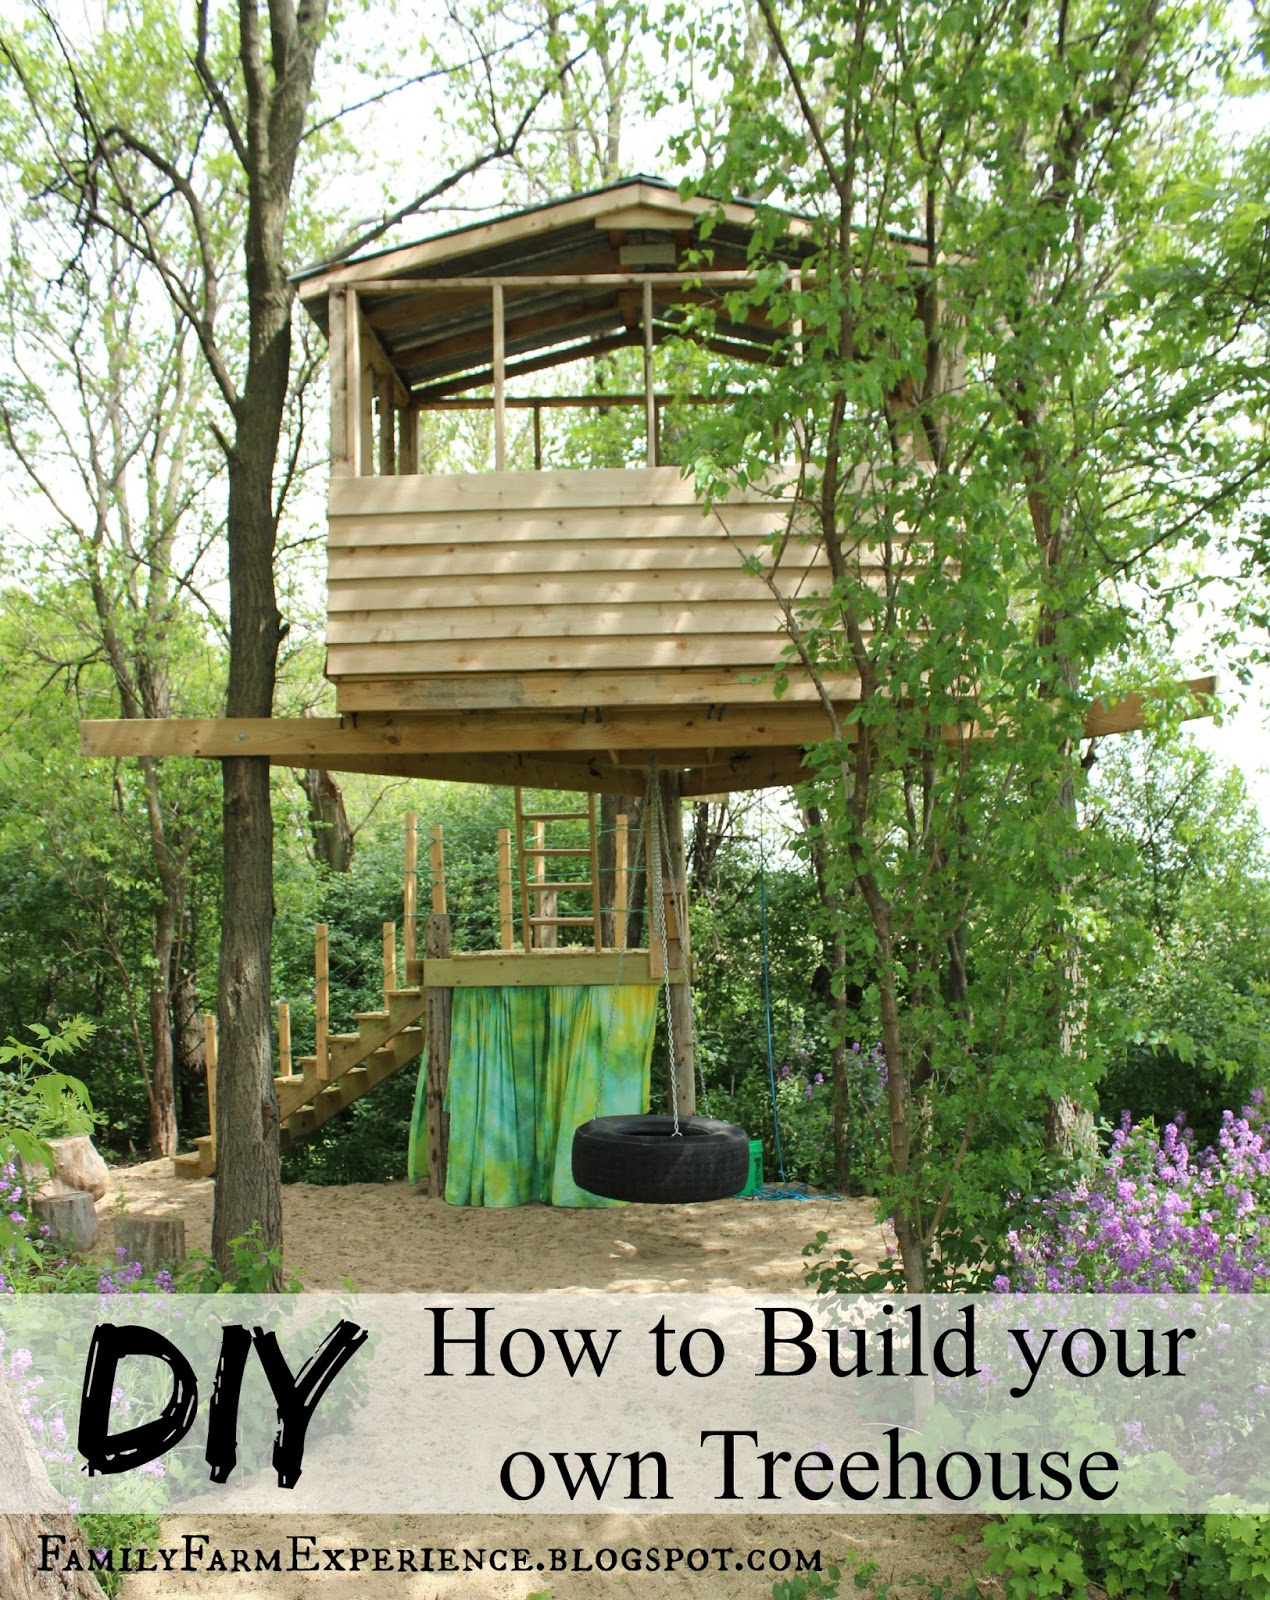 Family farm experience diy how to build your own treehouse for Build my own house